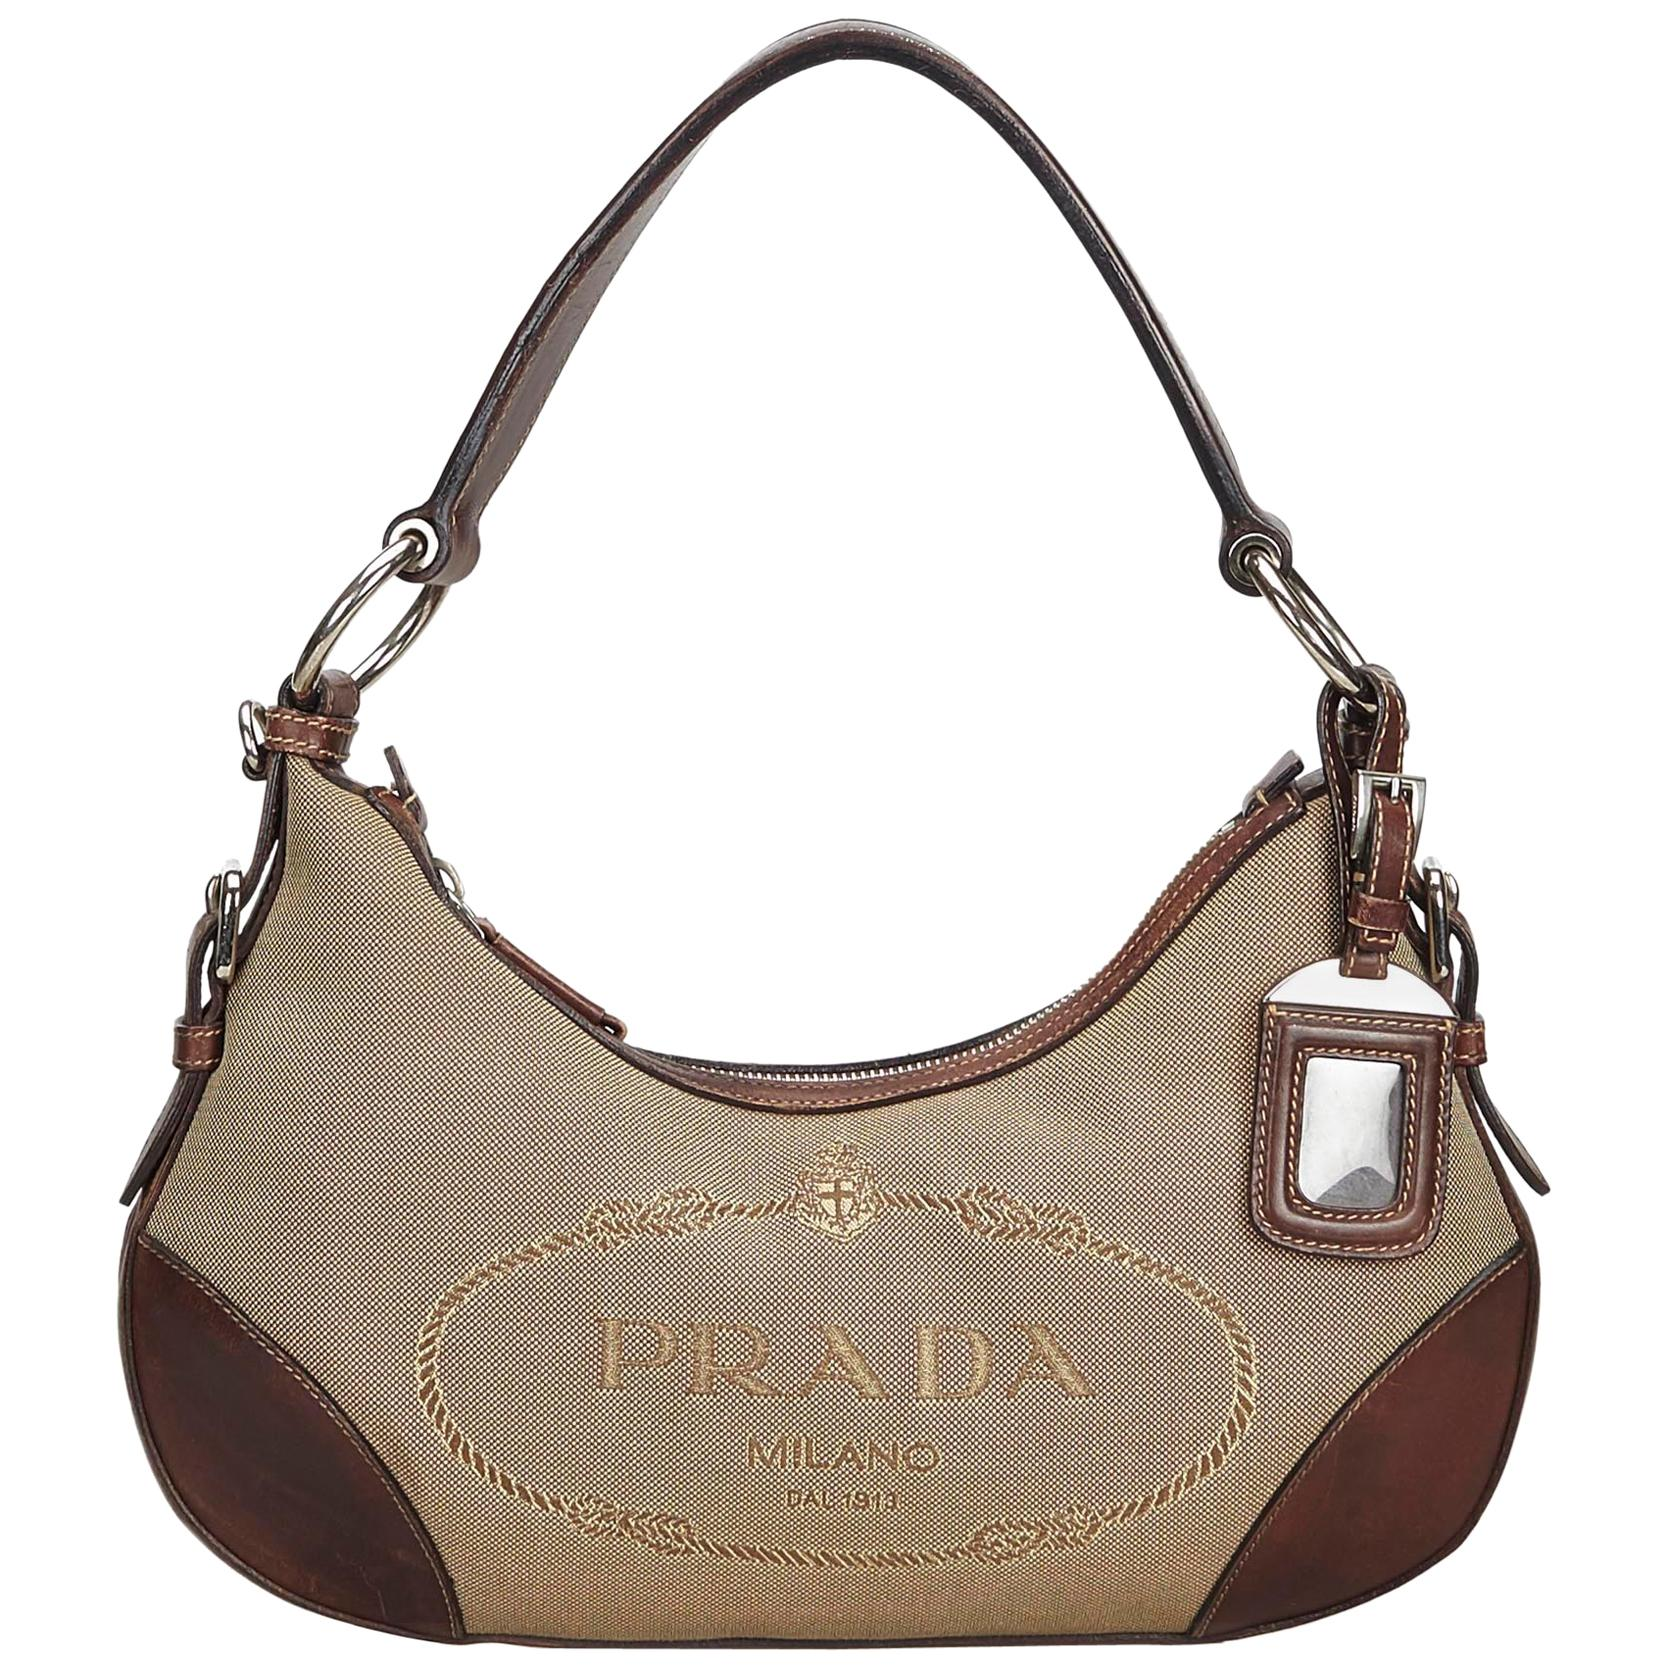 f1c5195e6e97 Vintage Prada Handbags and Purses - 1,245 For Sale at 1stdibs